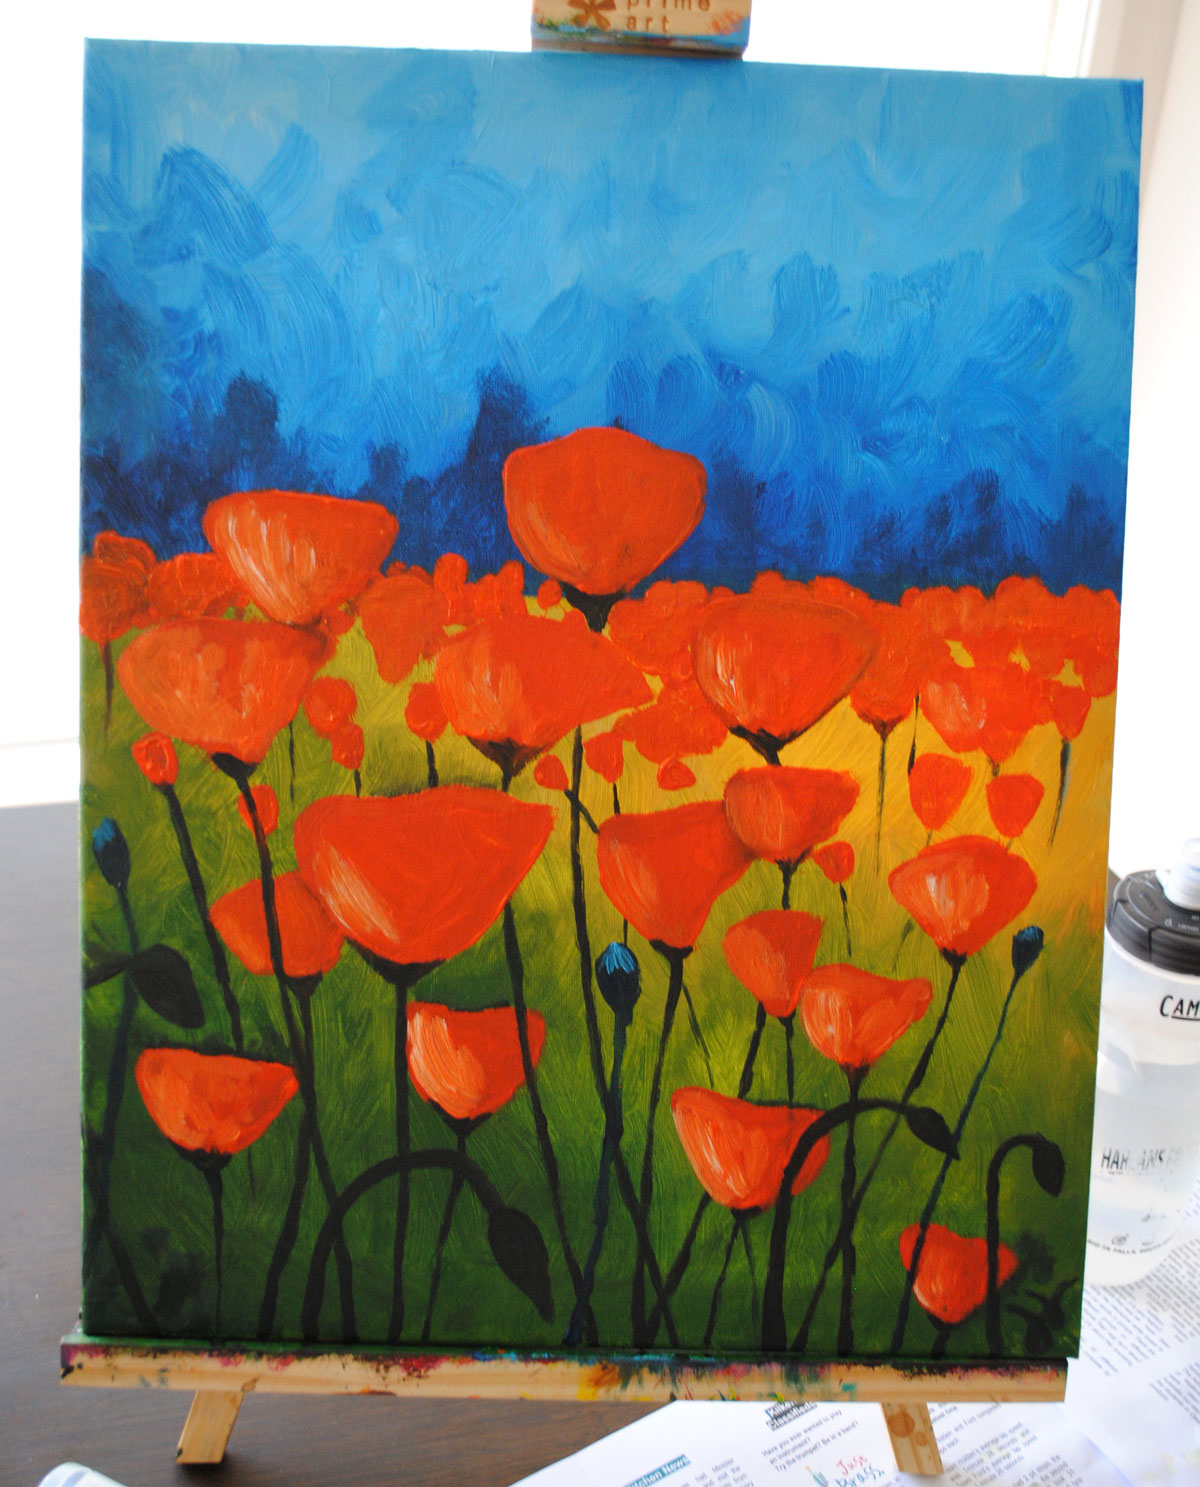 Field of Poppies - Sold Out